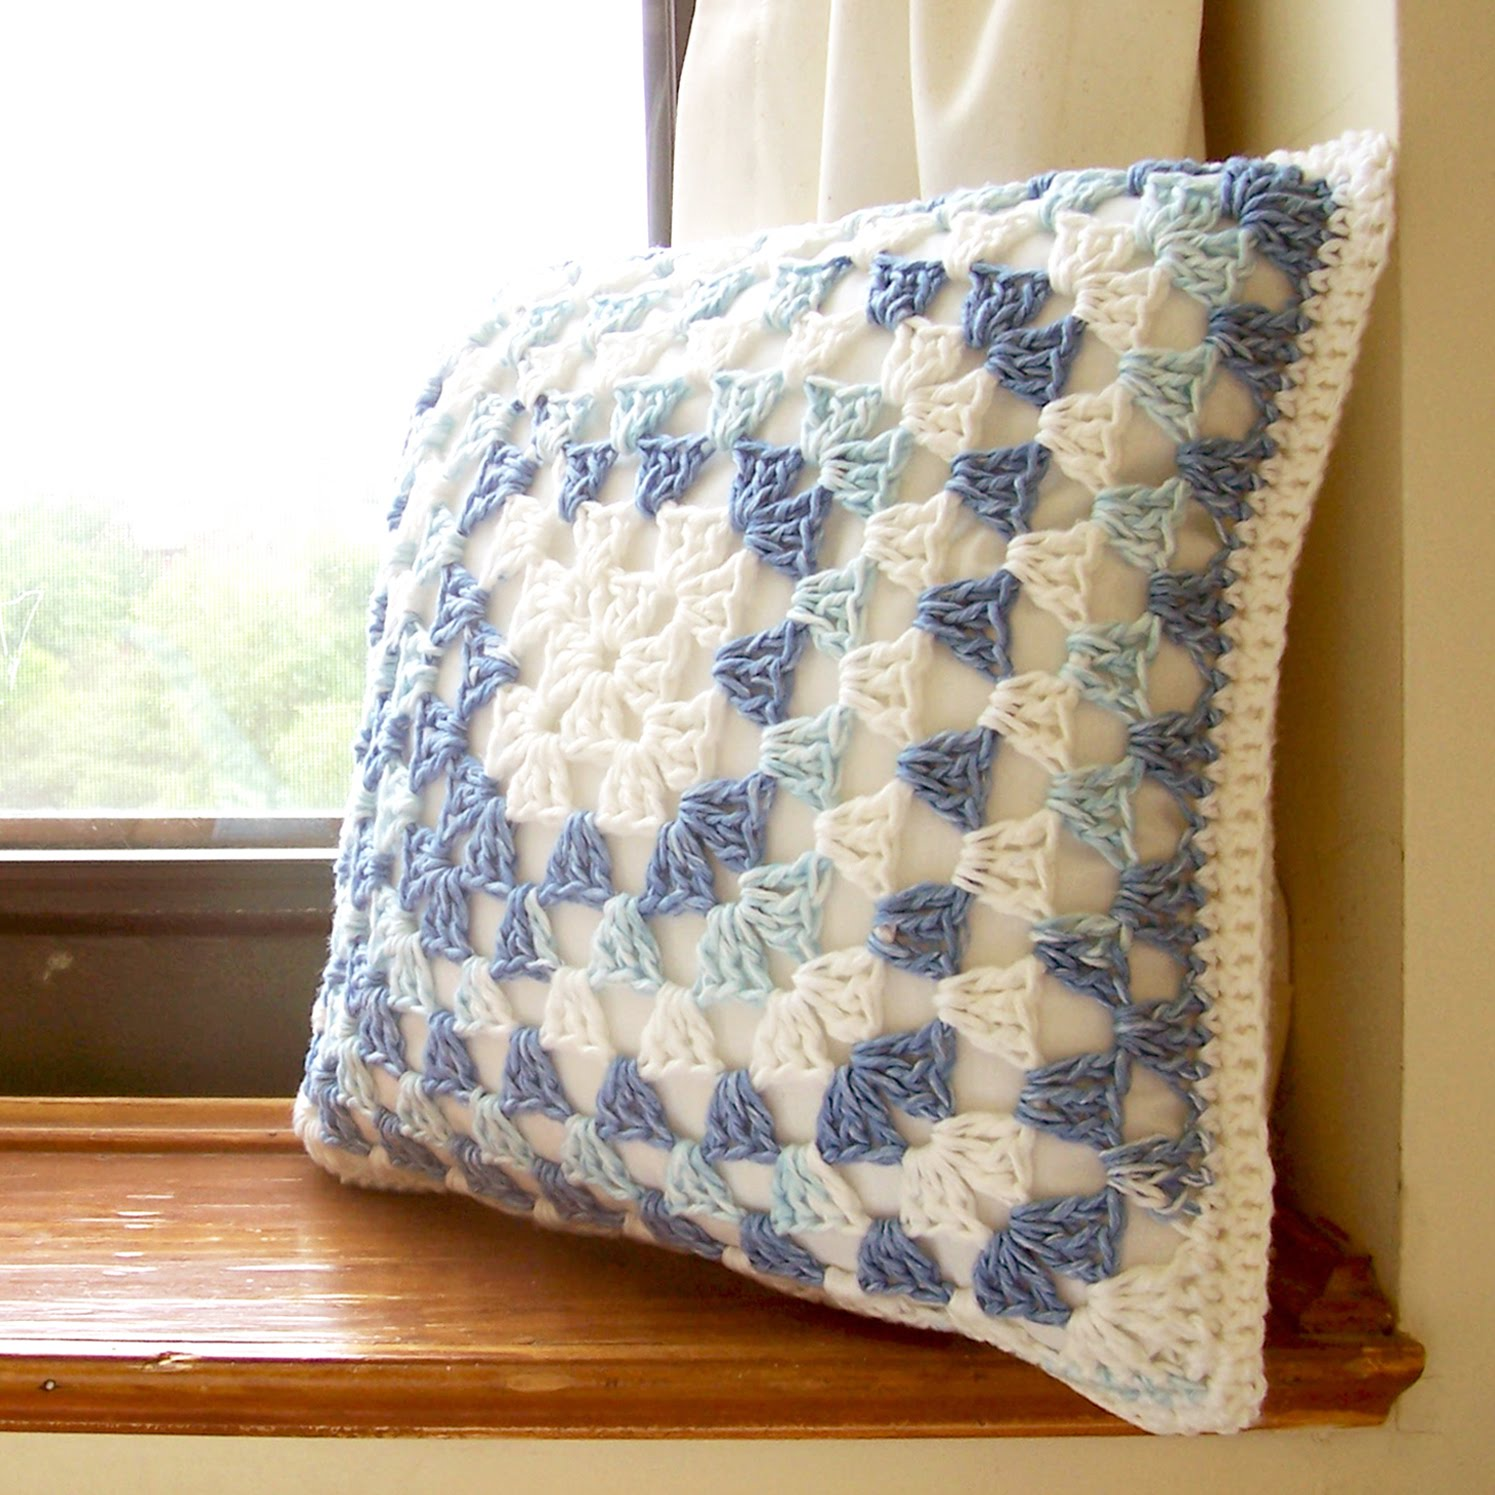 Crochet Pattern Granny Square Pillows : Mill Girl: Granny Square Pillow Cover